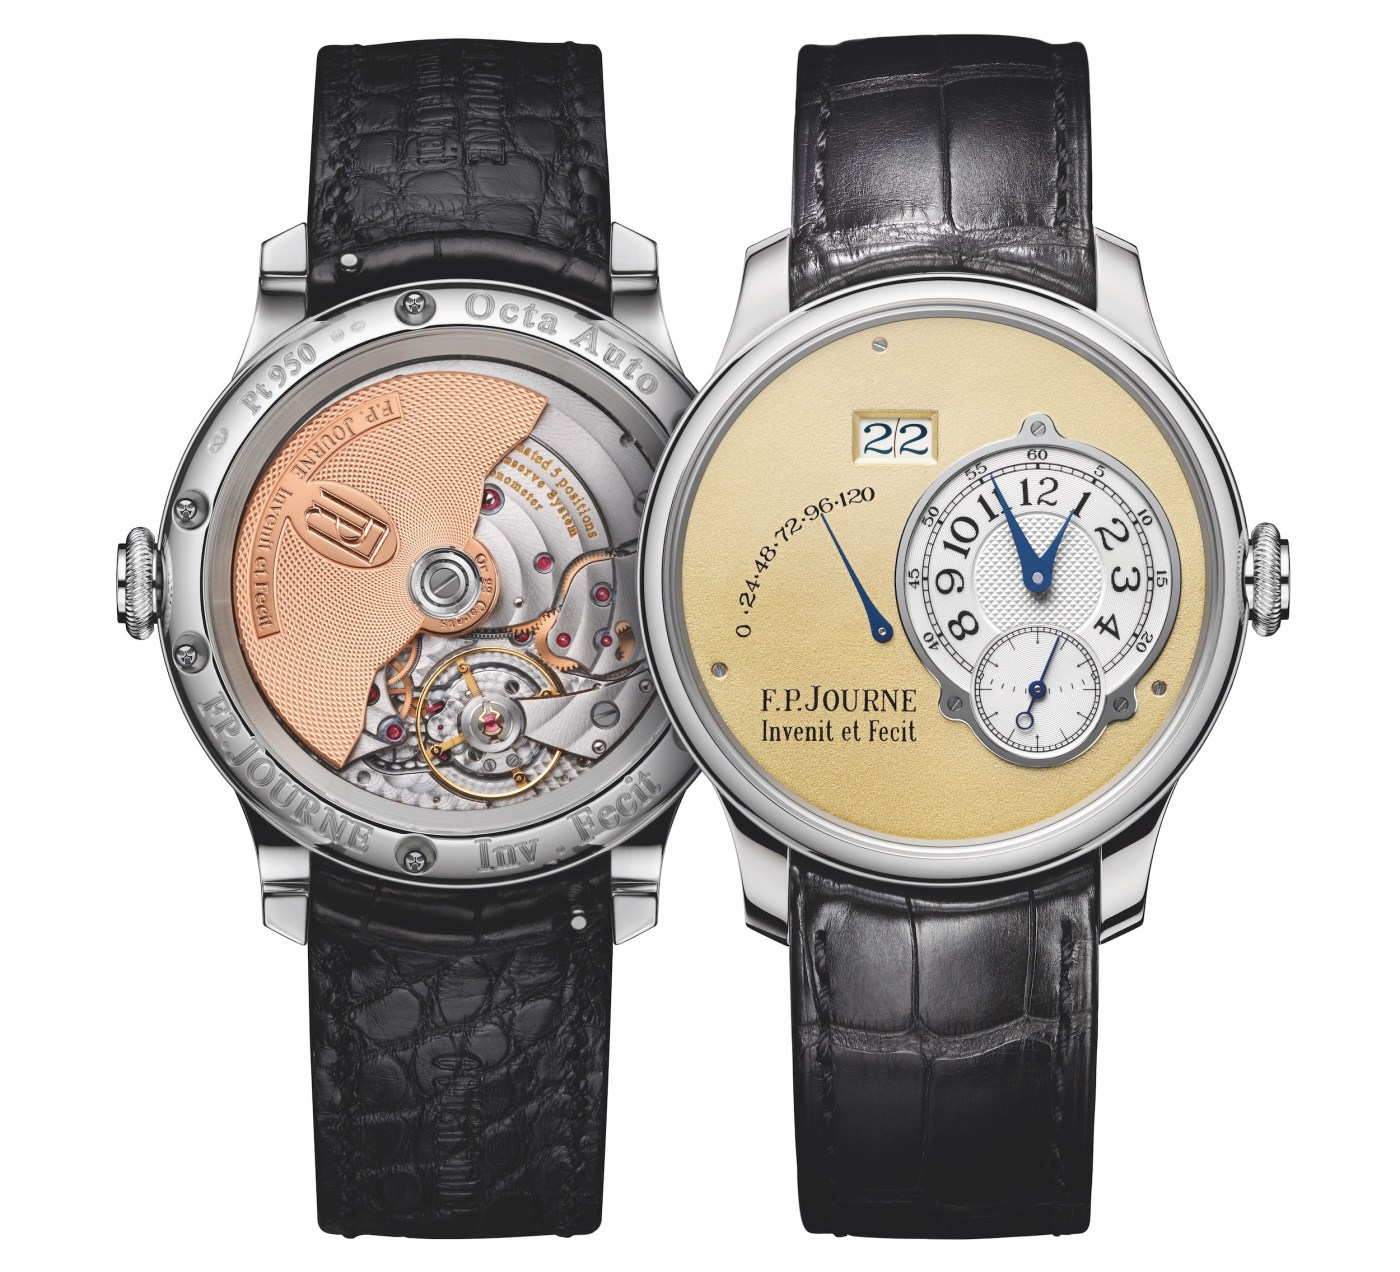 FP Journe Octa 2021 Limited Series